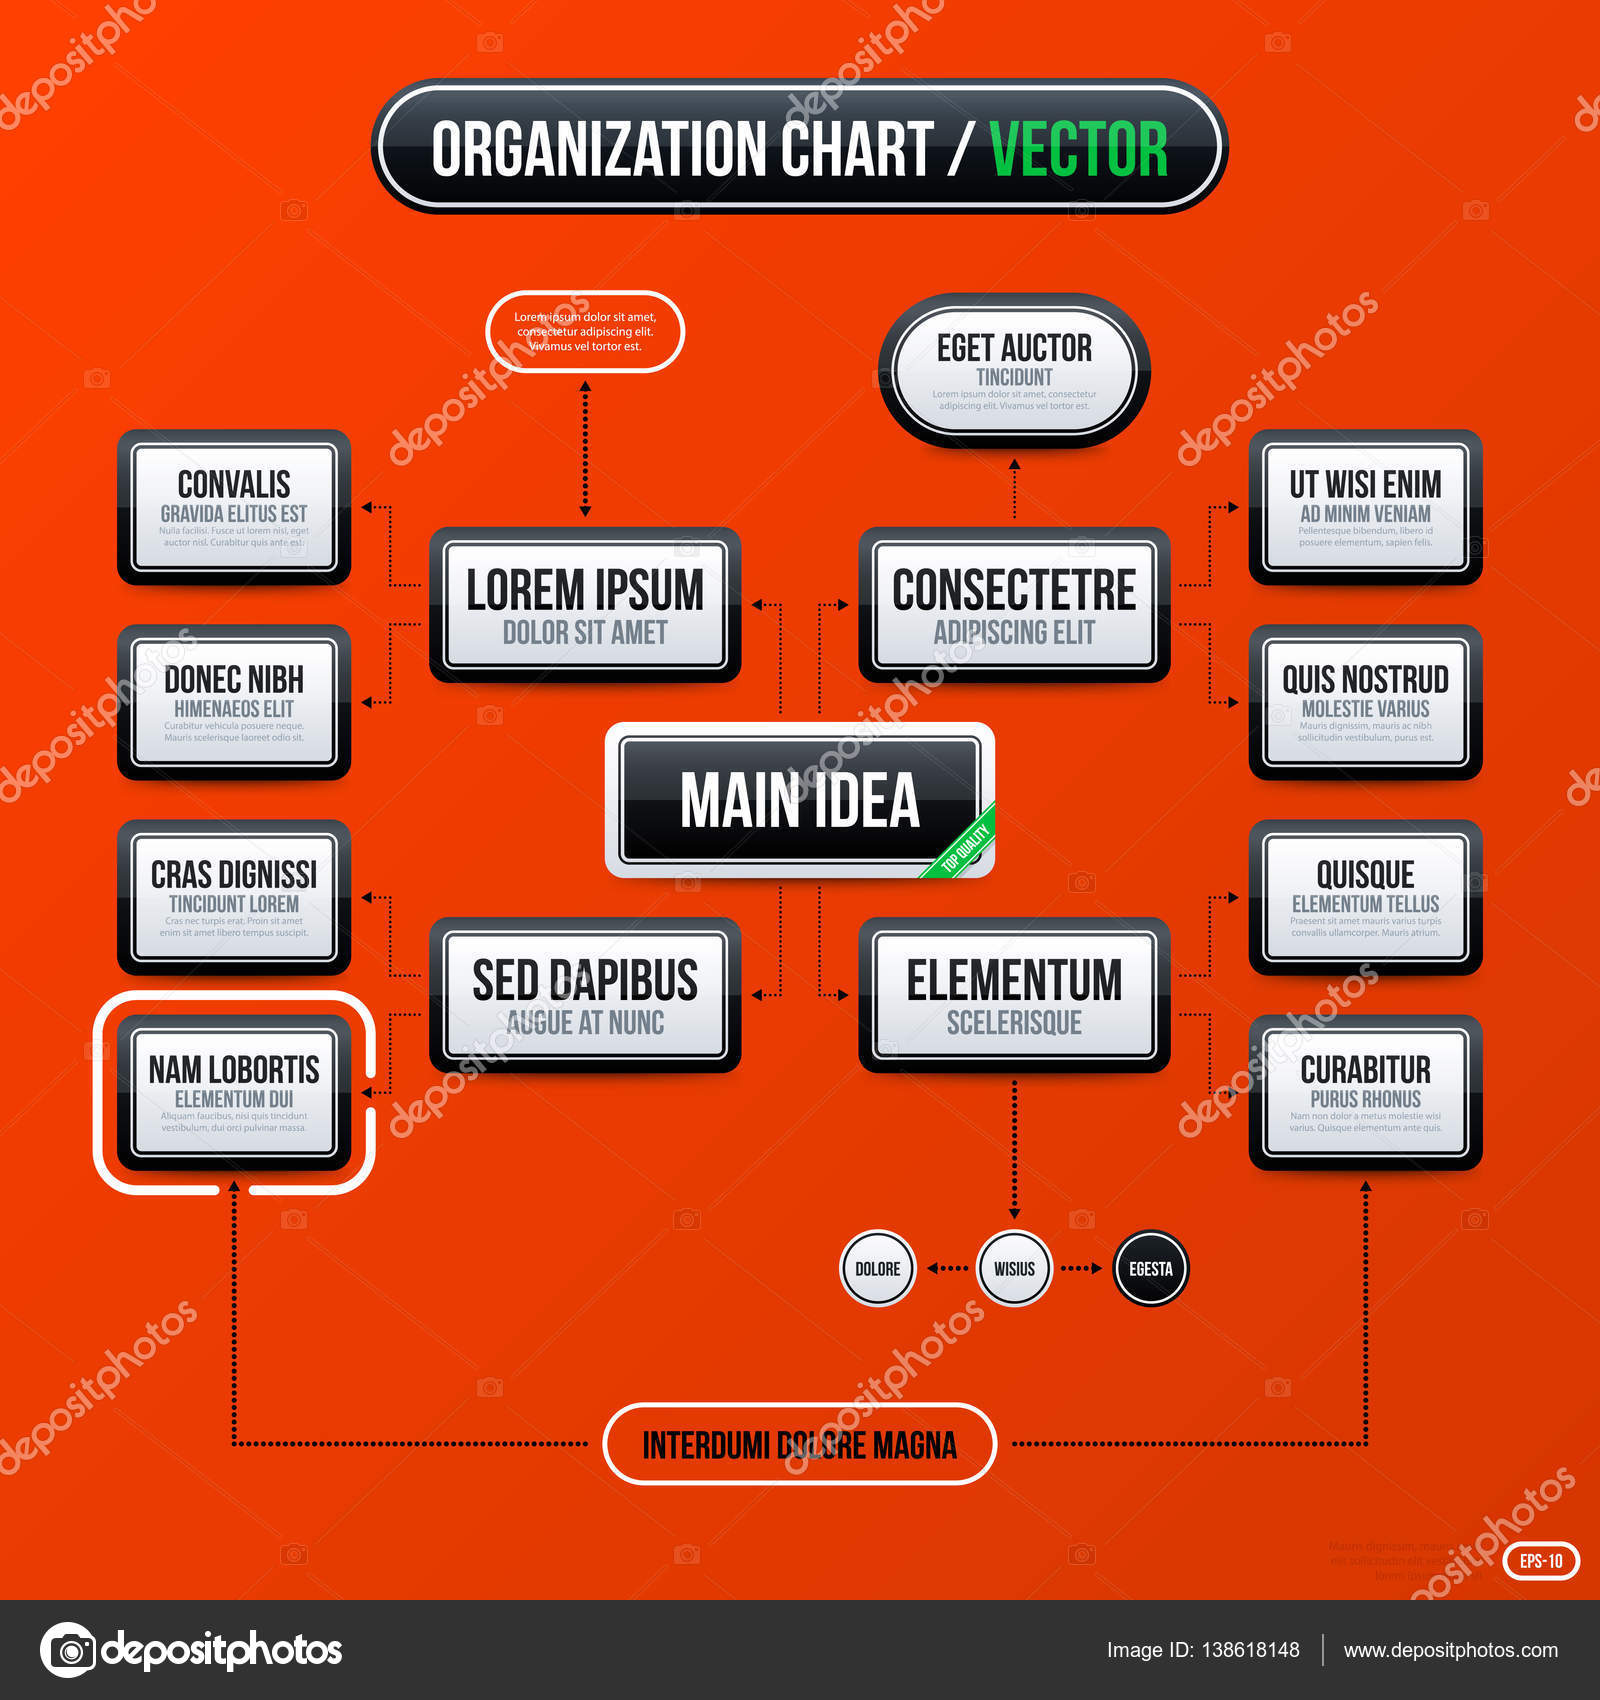 Corporate business organization chart template on bright orange corporate business organization chart template on bright orange background useful for presentations and advertising wajeb Choice Image